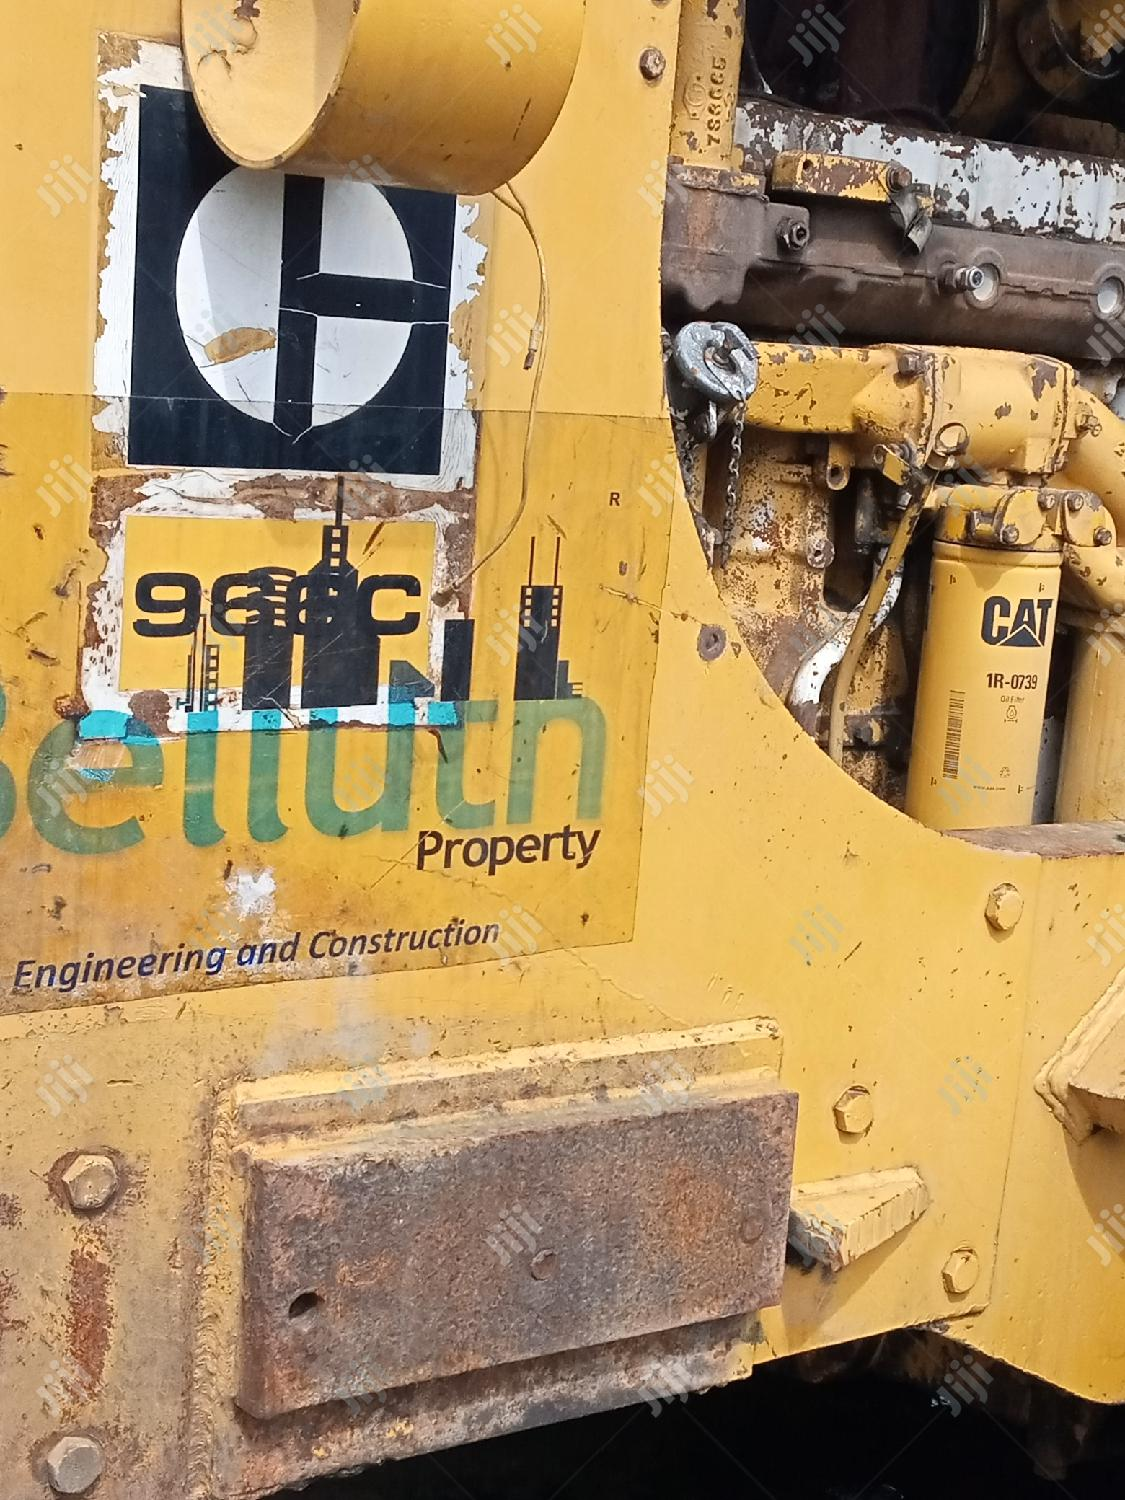 Payloader For Sale Now